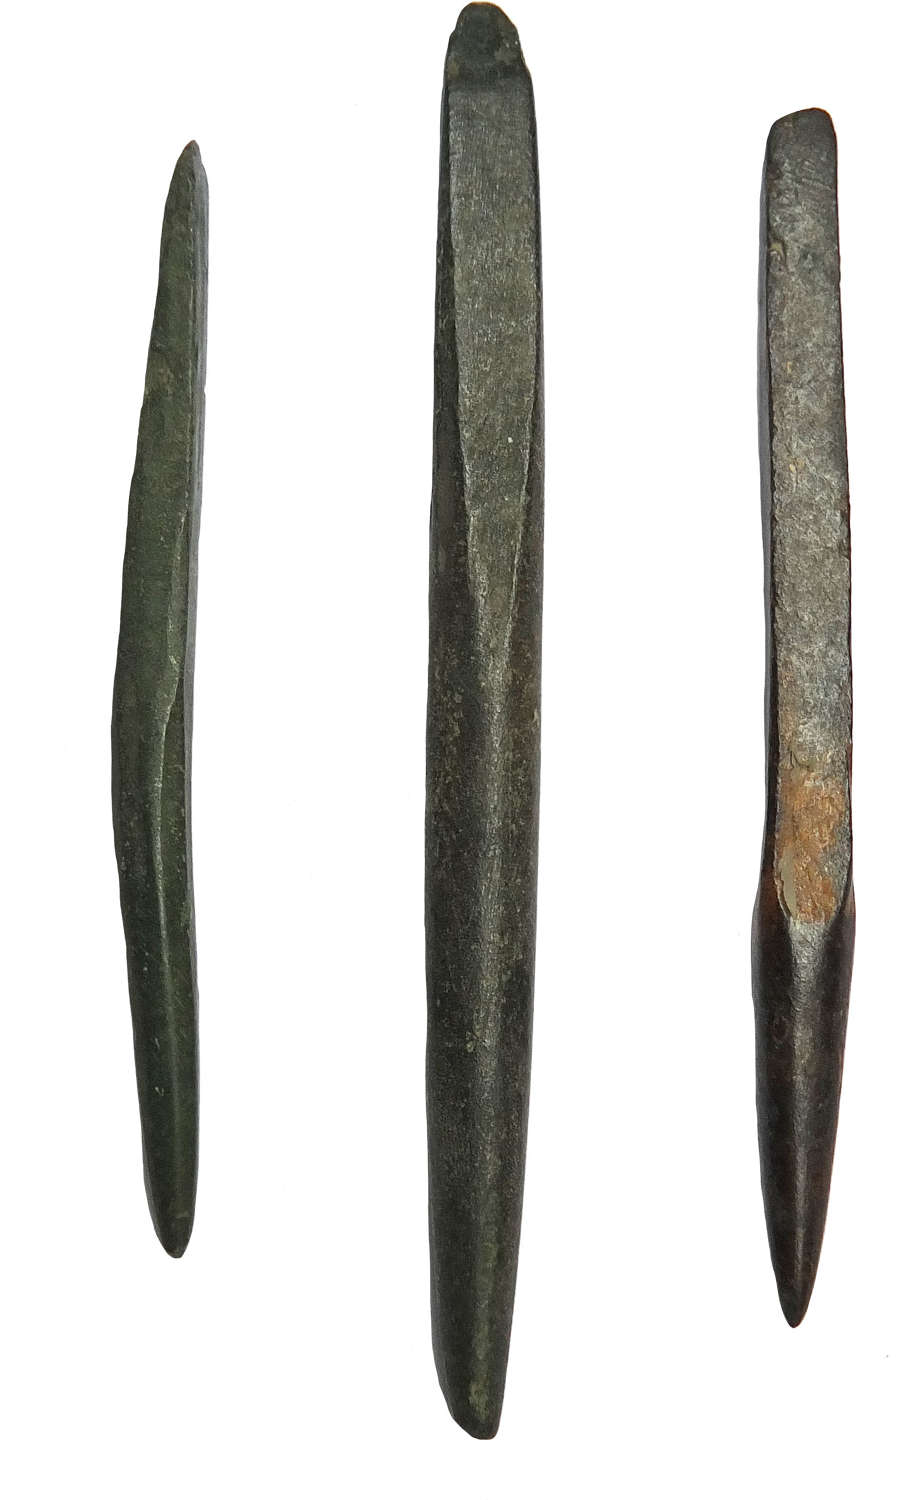 Three Late Bronze Age bronze awls or punches, 1150-800 B.C.